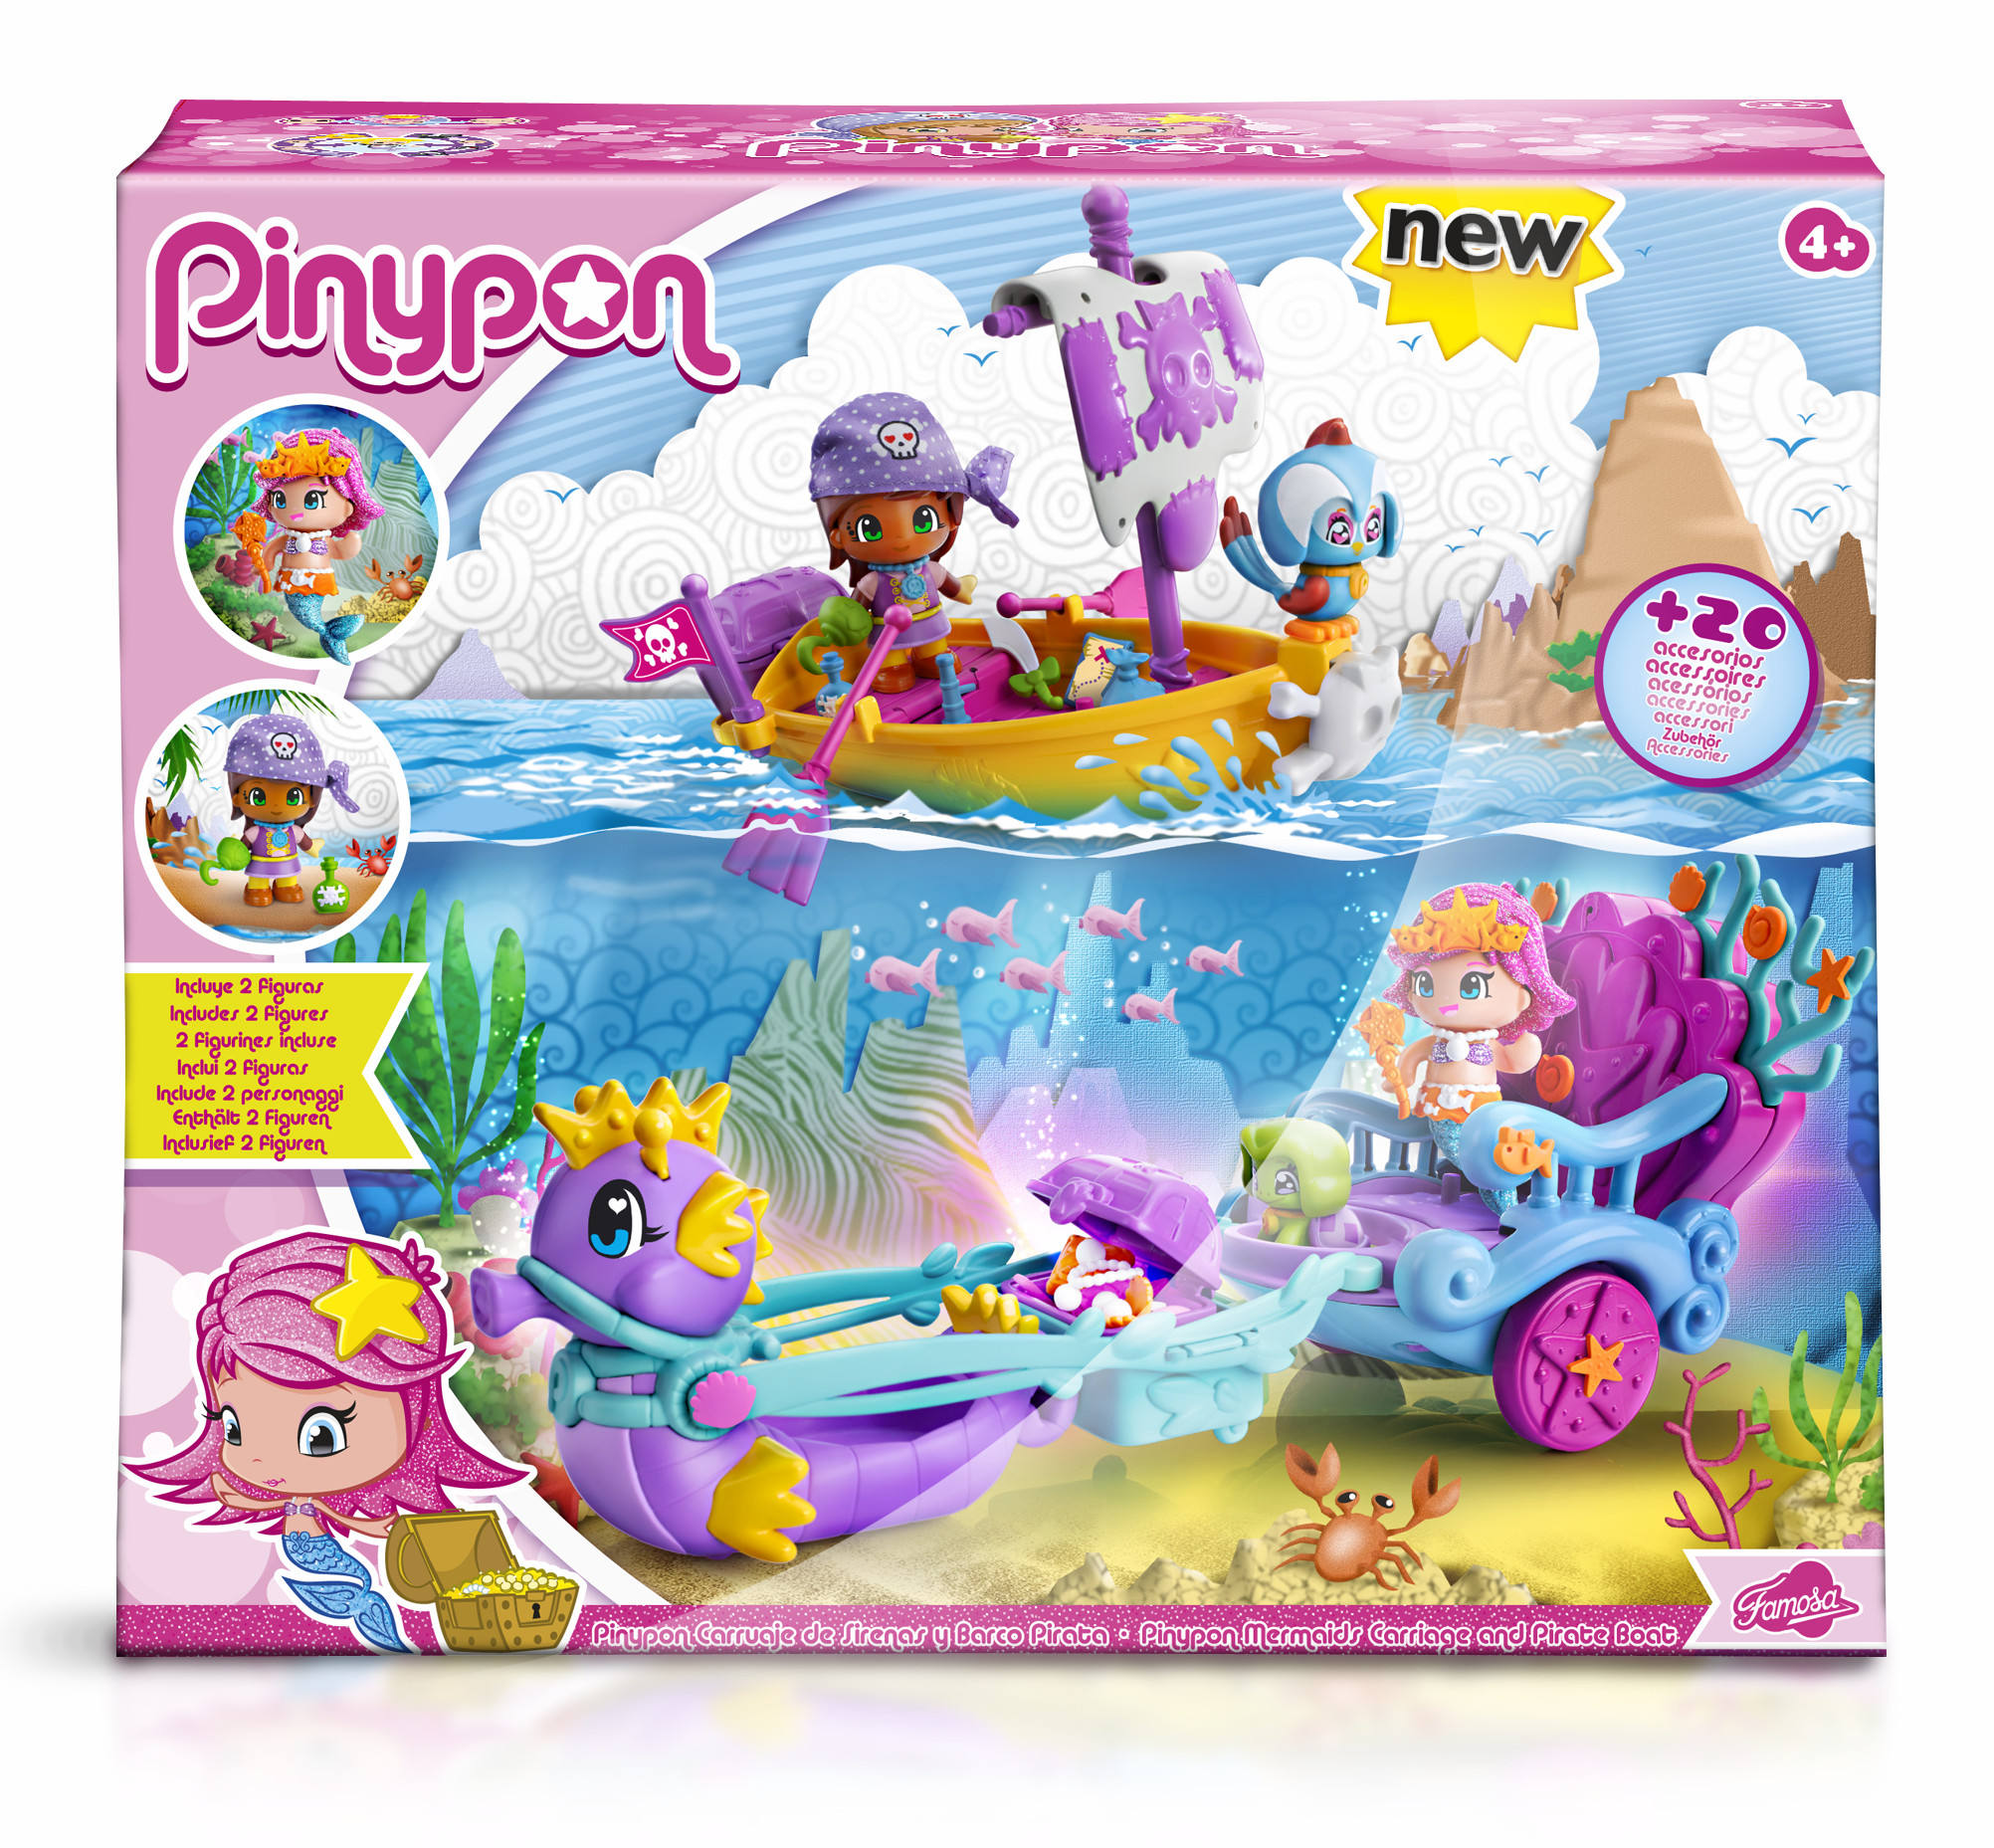 PINYPON CARROZA DE SIRENAS Y BITE PIRATA 13367